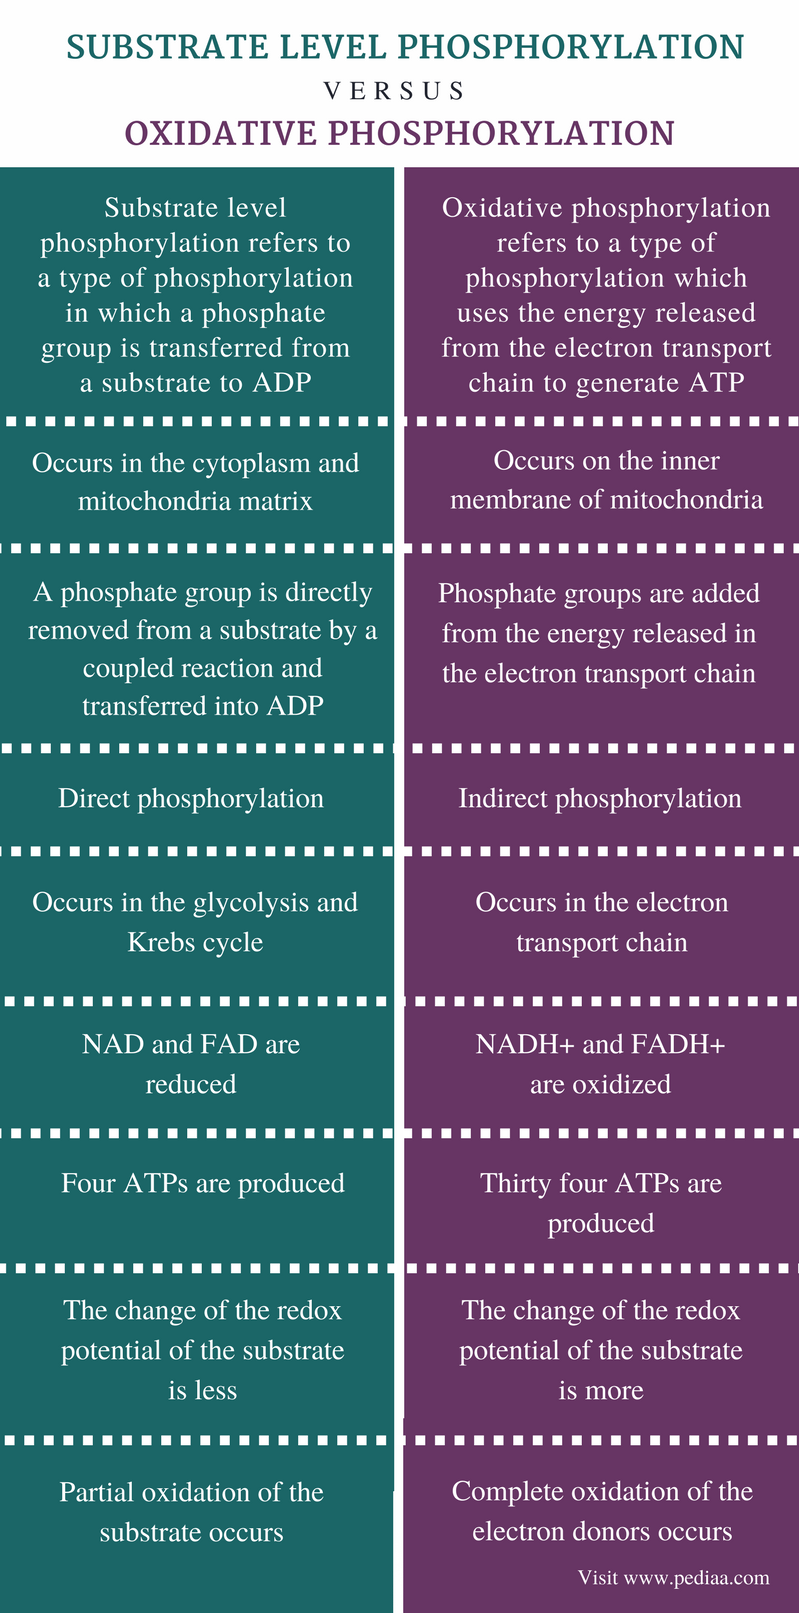 Difference Between Substrate Level Phosphorylation and Oxidative Phosphorylation - Comparison Summary